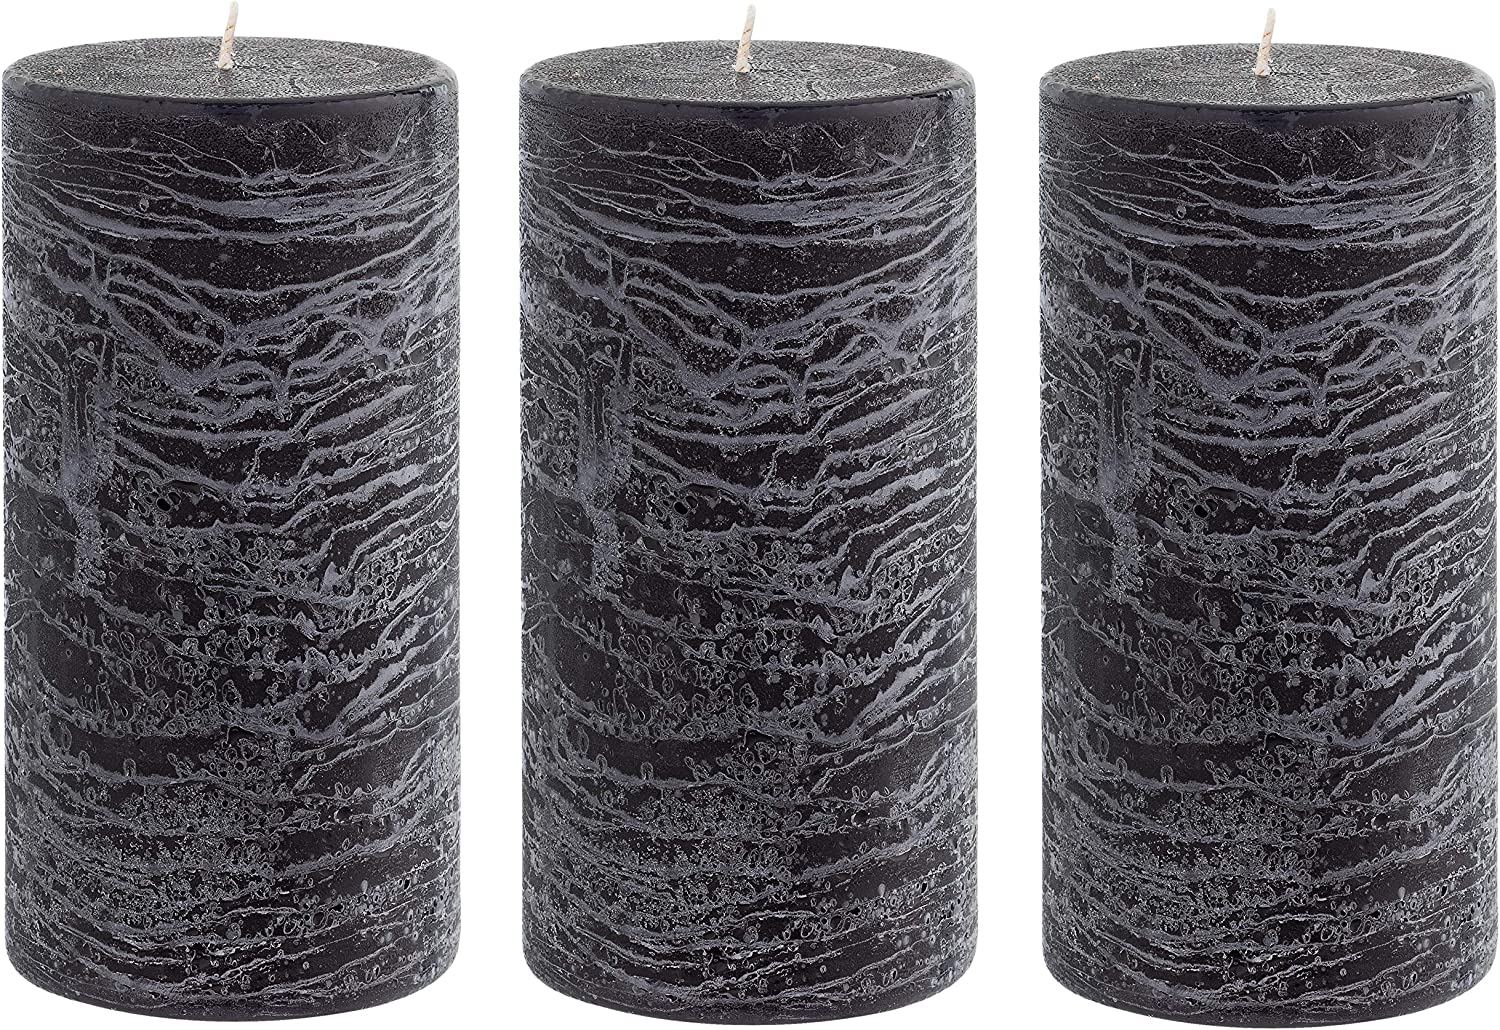 Unscented 3x6 Tall Pillar Candles – Set of 3 Hand Poured Wax Candles | Smokeless, Clean Burning Décor for Home, Weddings, Church, Events | Black: Home Improvement